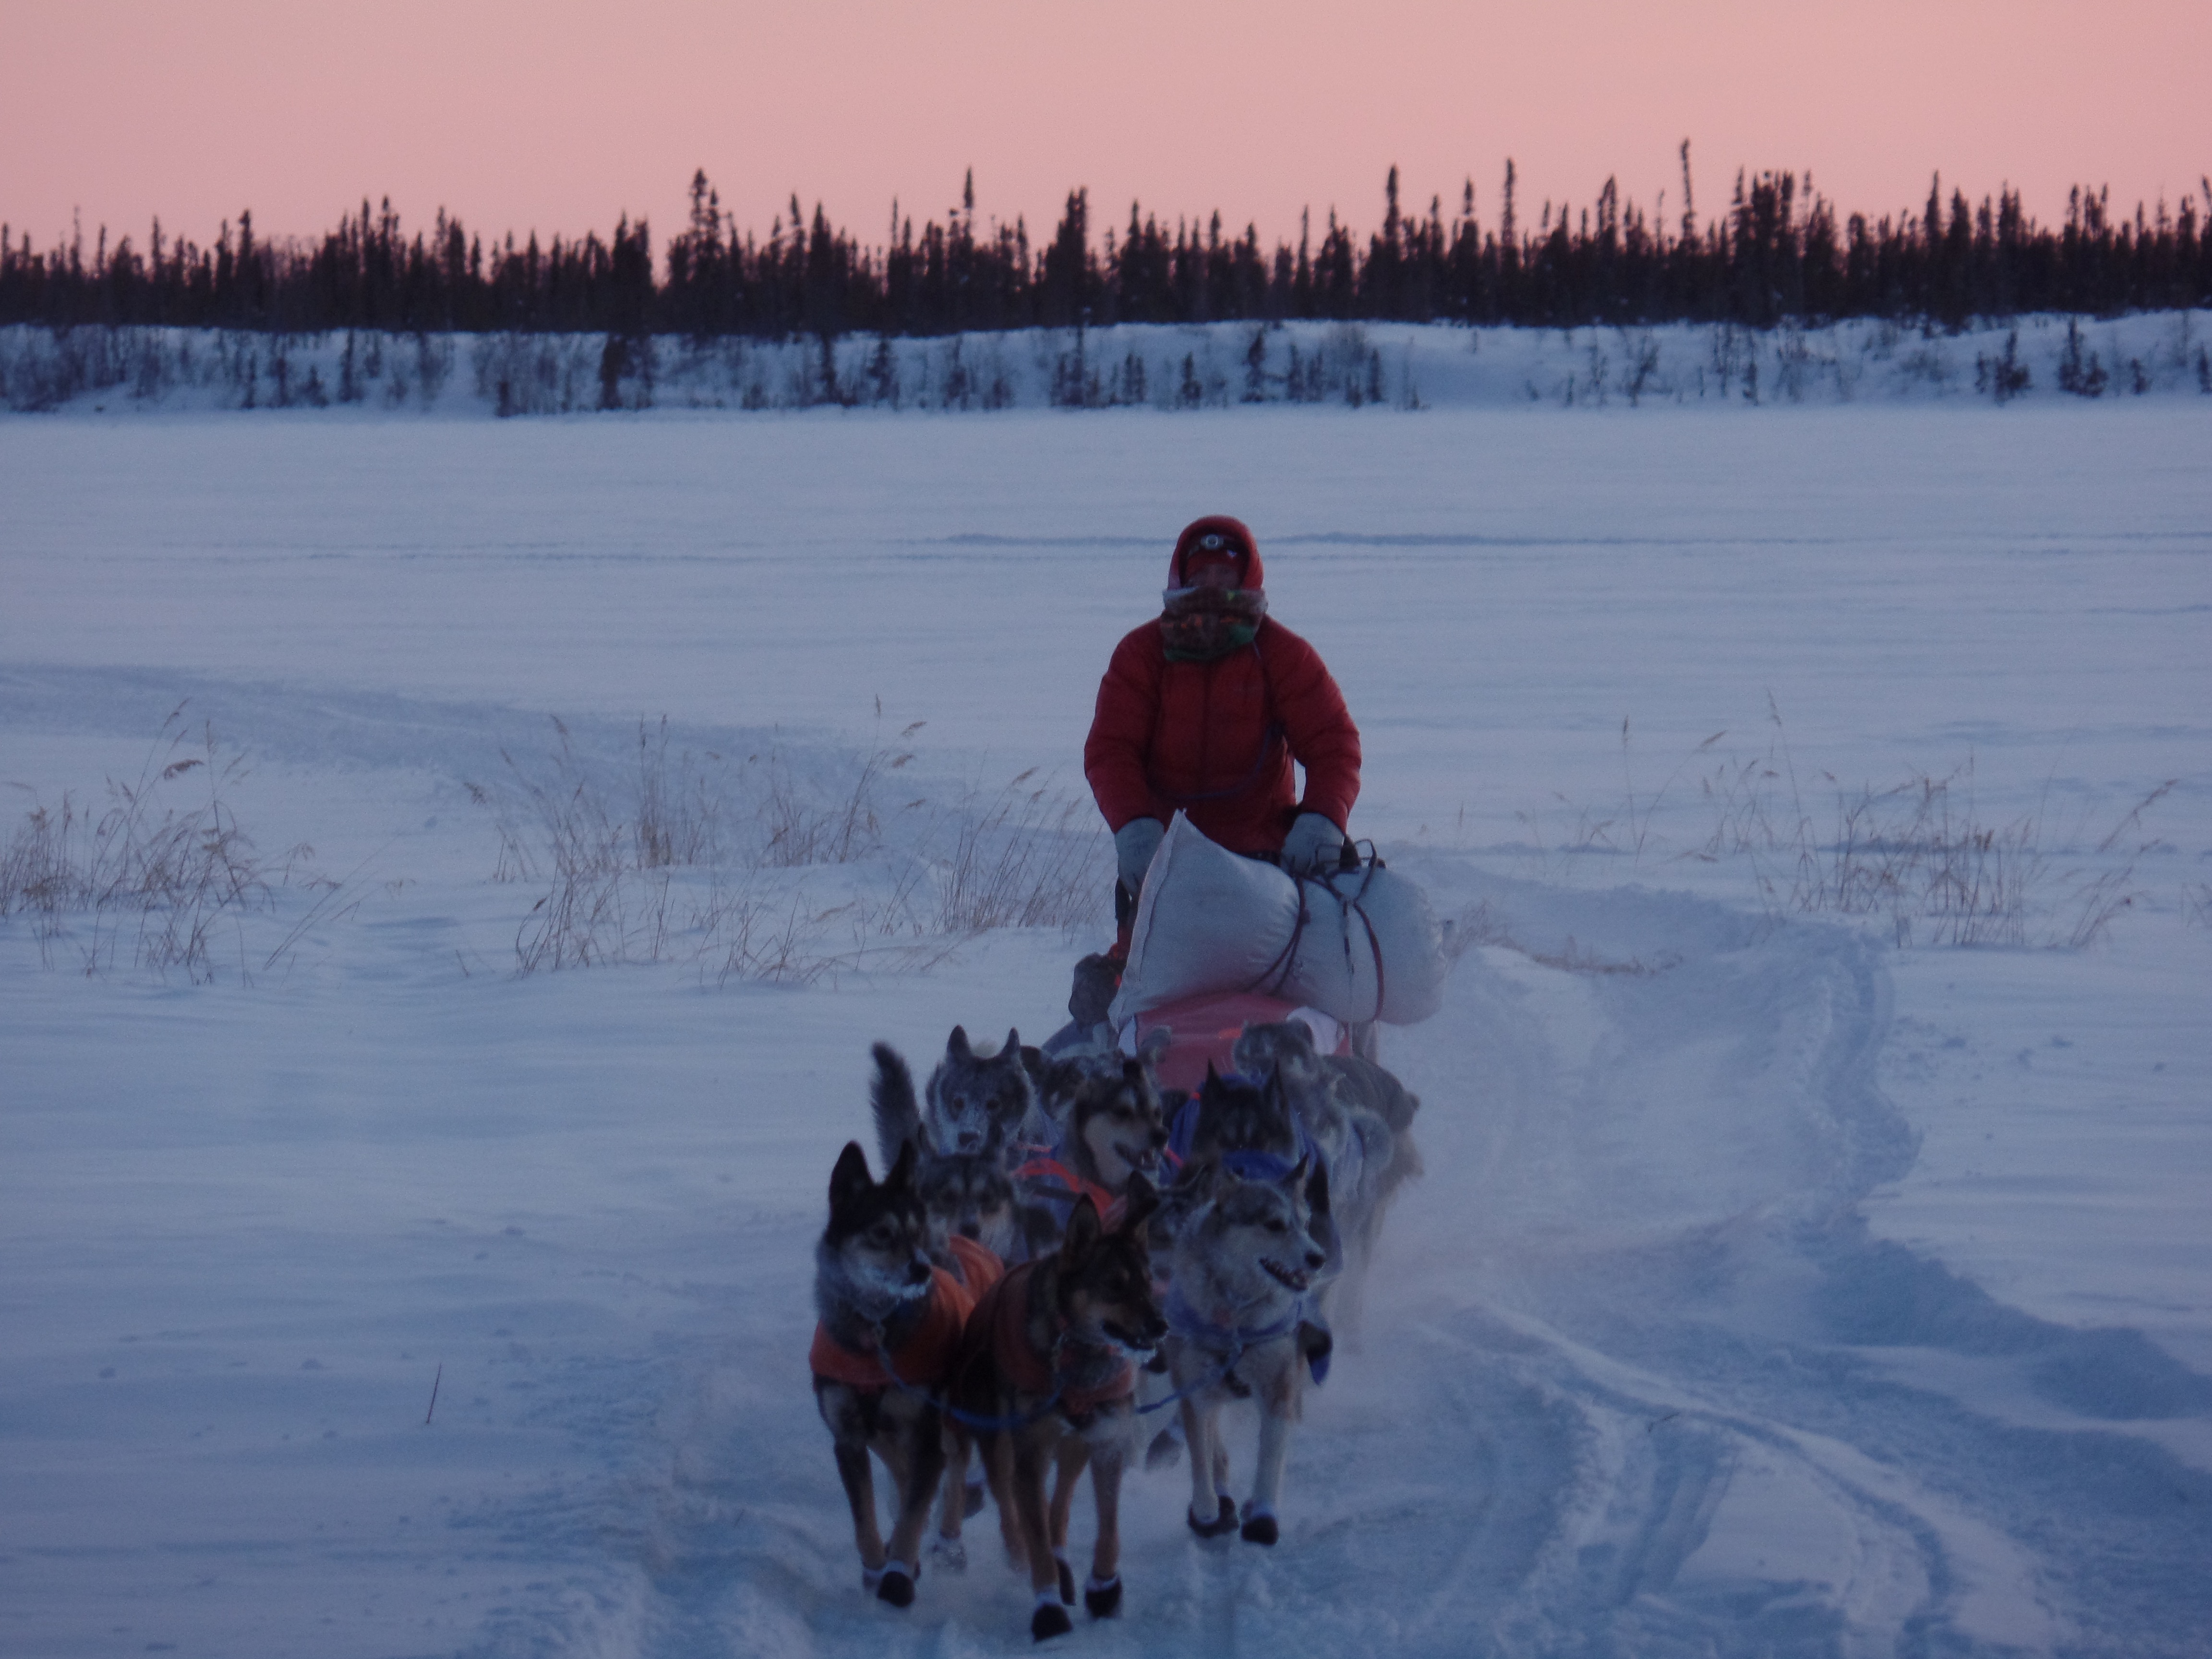 1 cabin, 50 frozen mushers, and us. An Iditarod Story.